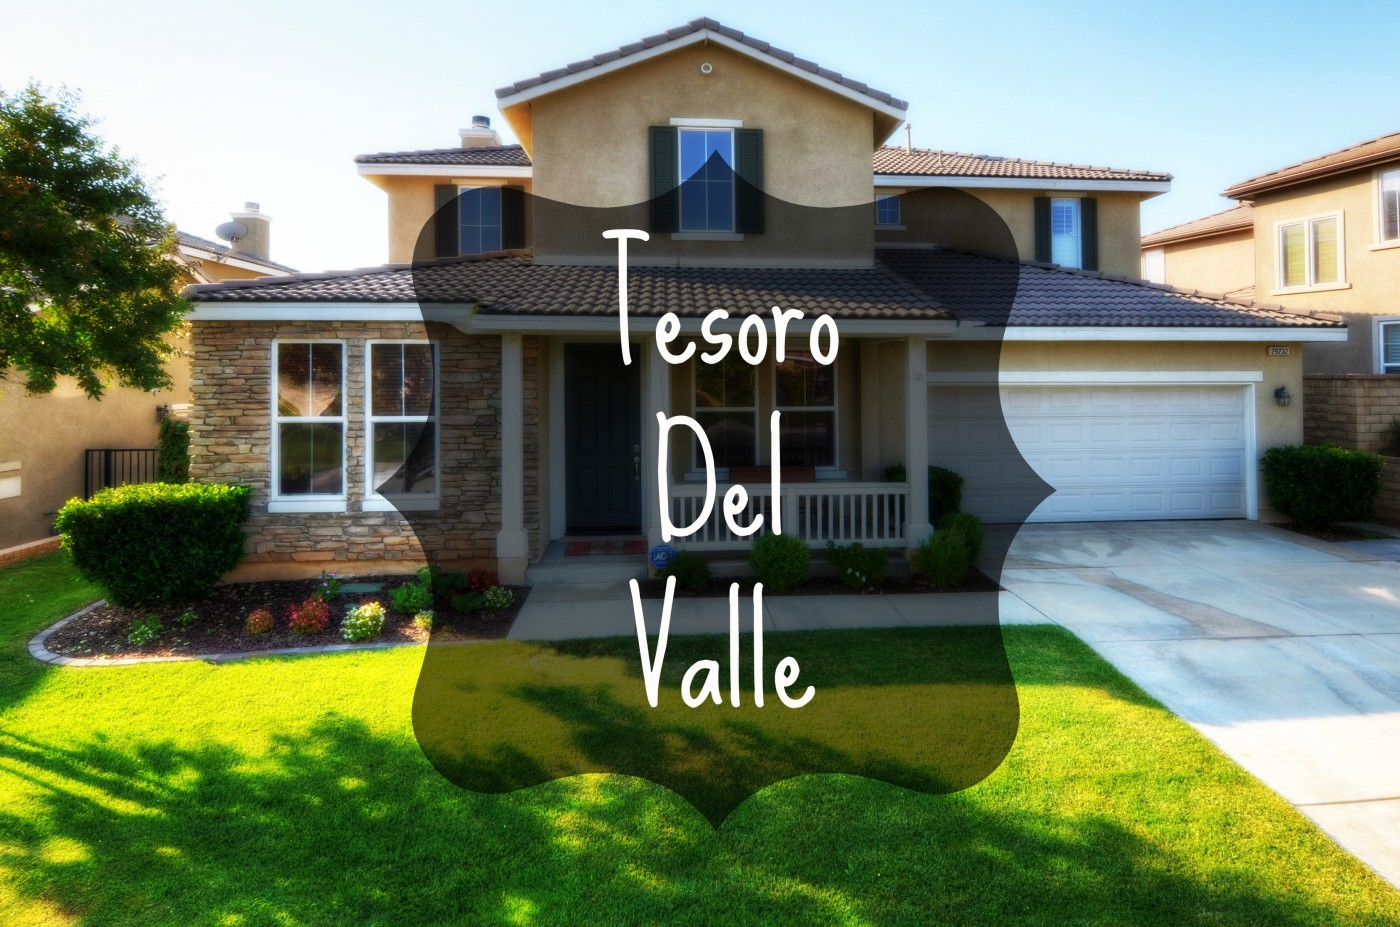 Valencia tesoro del valle homes for sale may 2016 ask Valencia home